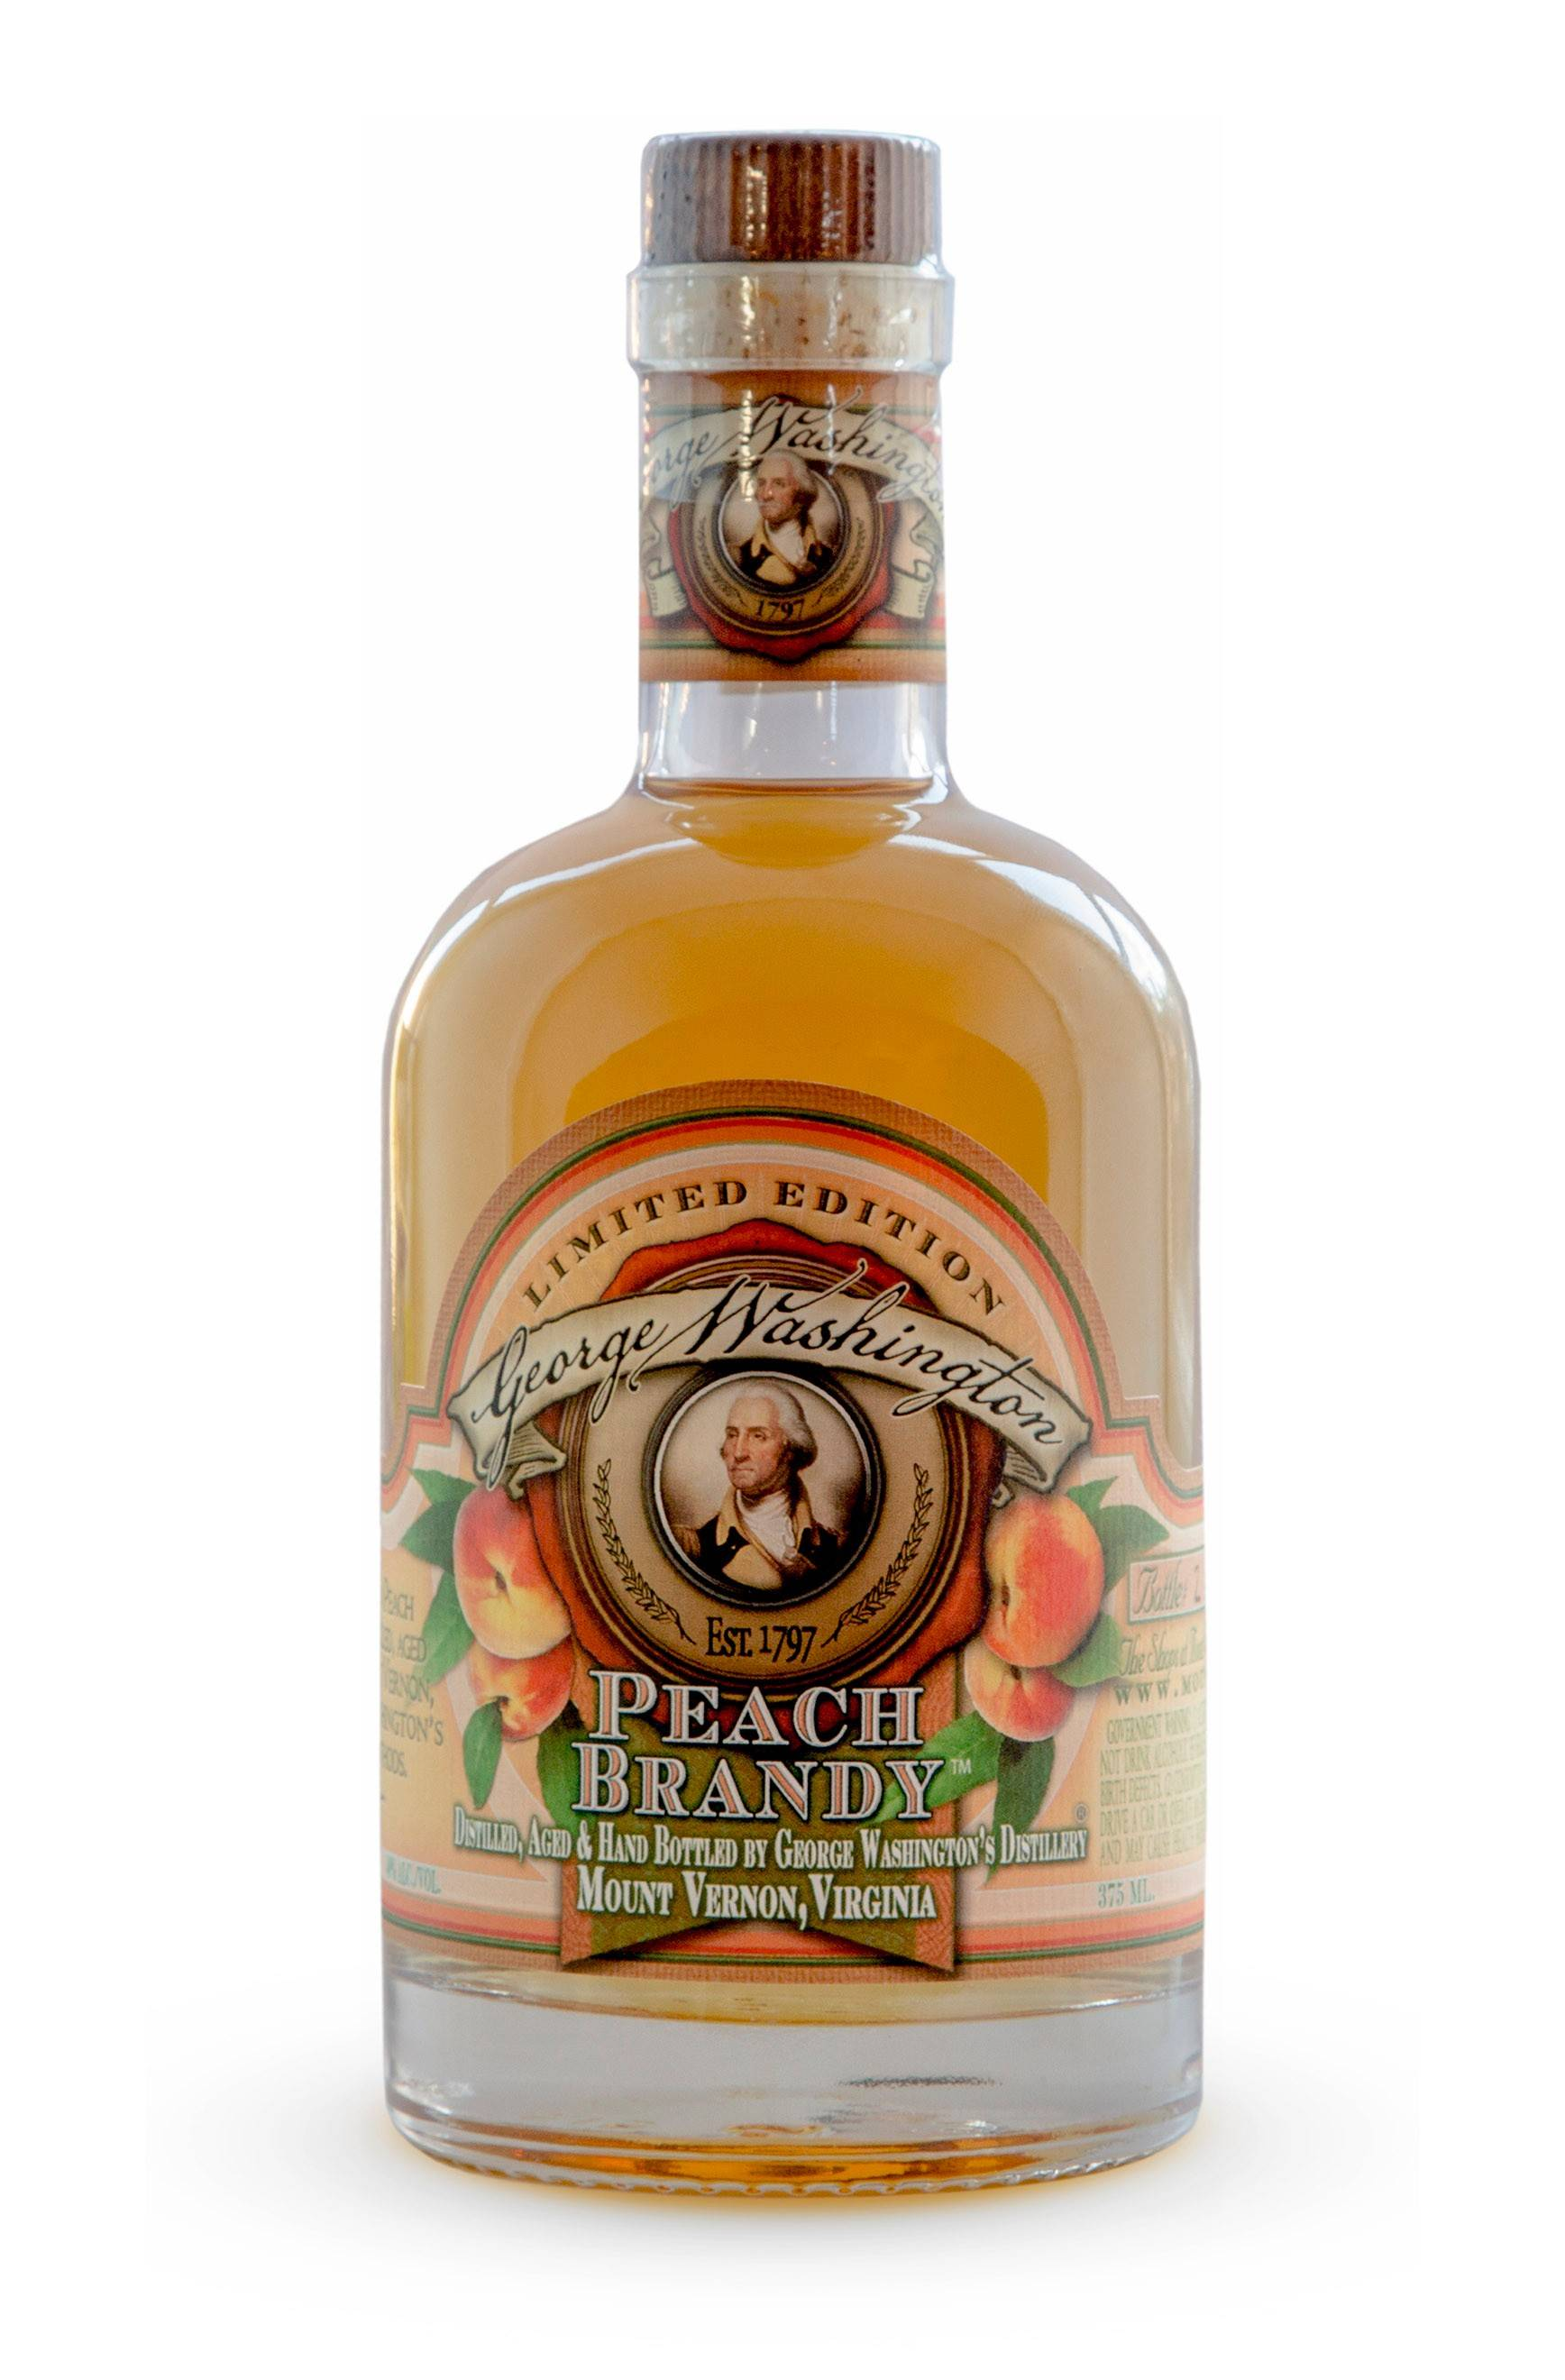 Peach brandy from George Washington's reconstructed distillery at Mount Vernon is like nothing you've ever tasted before.